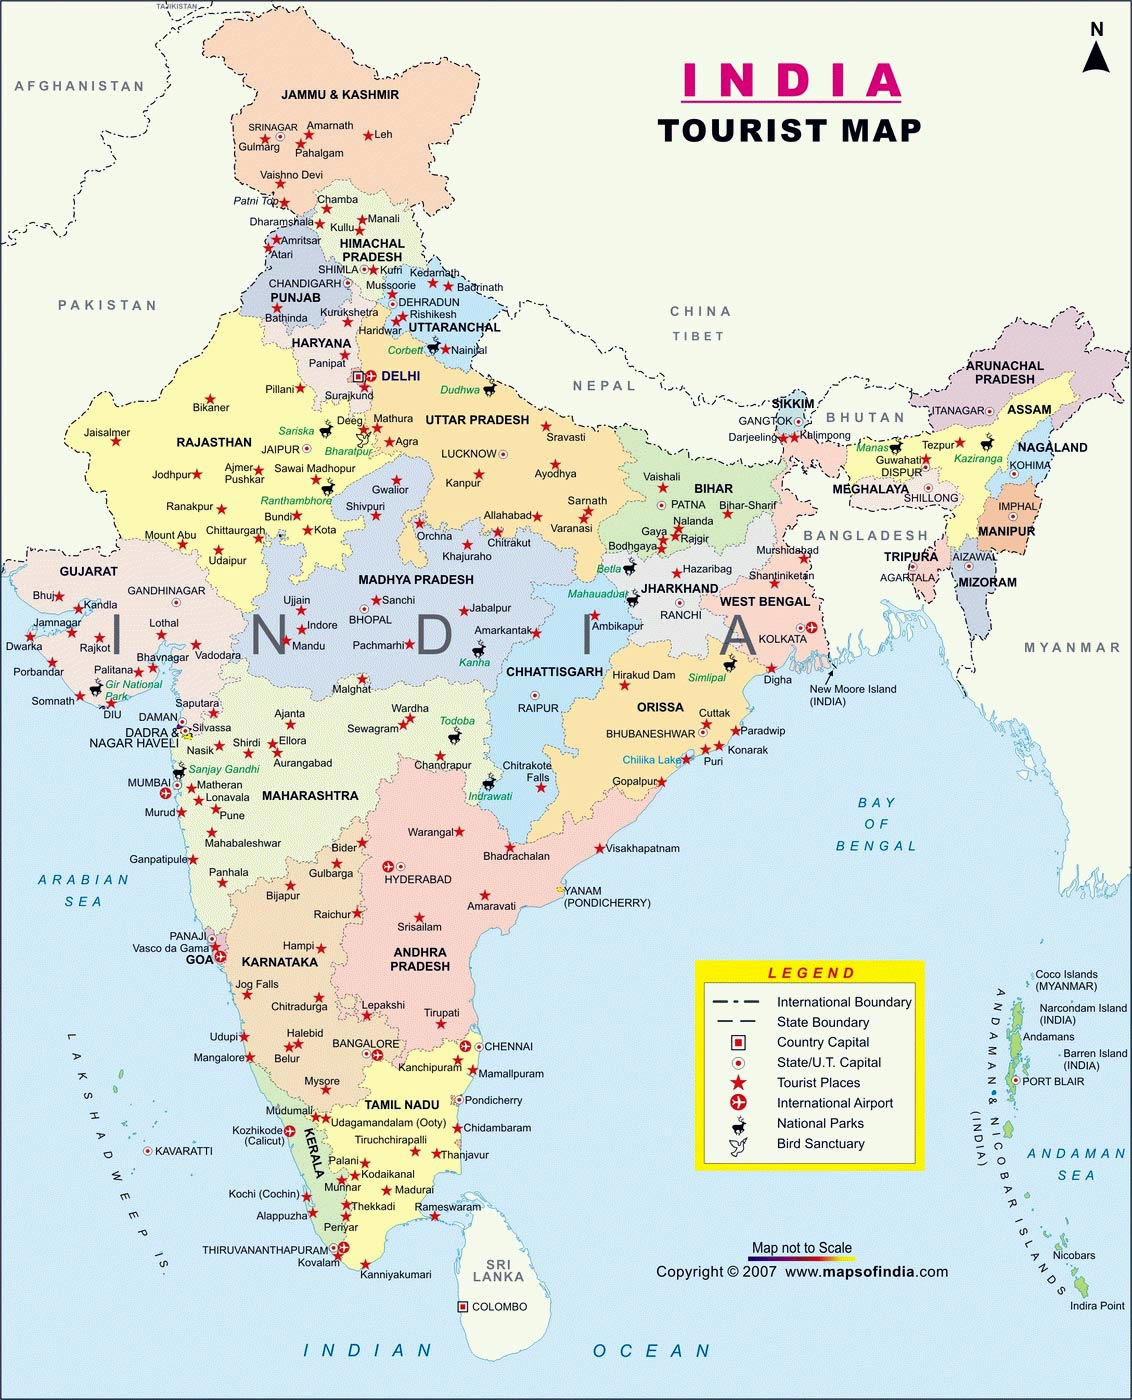 India Maps | Printable Maps of India for Download on india neighborhood map, gauhati india map, india uttarakhand rishikesh, india physical and political map, green india map, hindu kush mountains map, india state map, united states of america, rural india map, world map, south asia map, india map with bodies of water, india map recent, india continent map, taj mahal india location on map, india russia map, india hampi map, india physical map of rivers, india animal symbol, india khyber pass location, sri lanka, export by countries map,